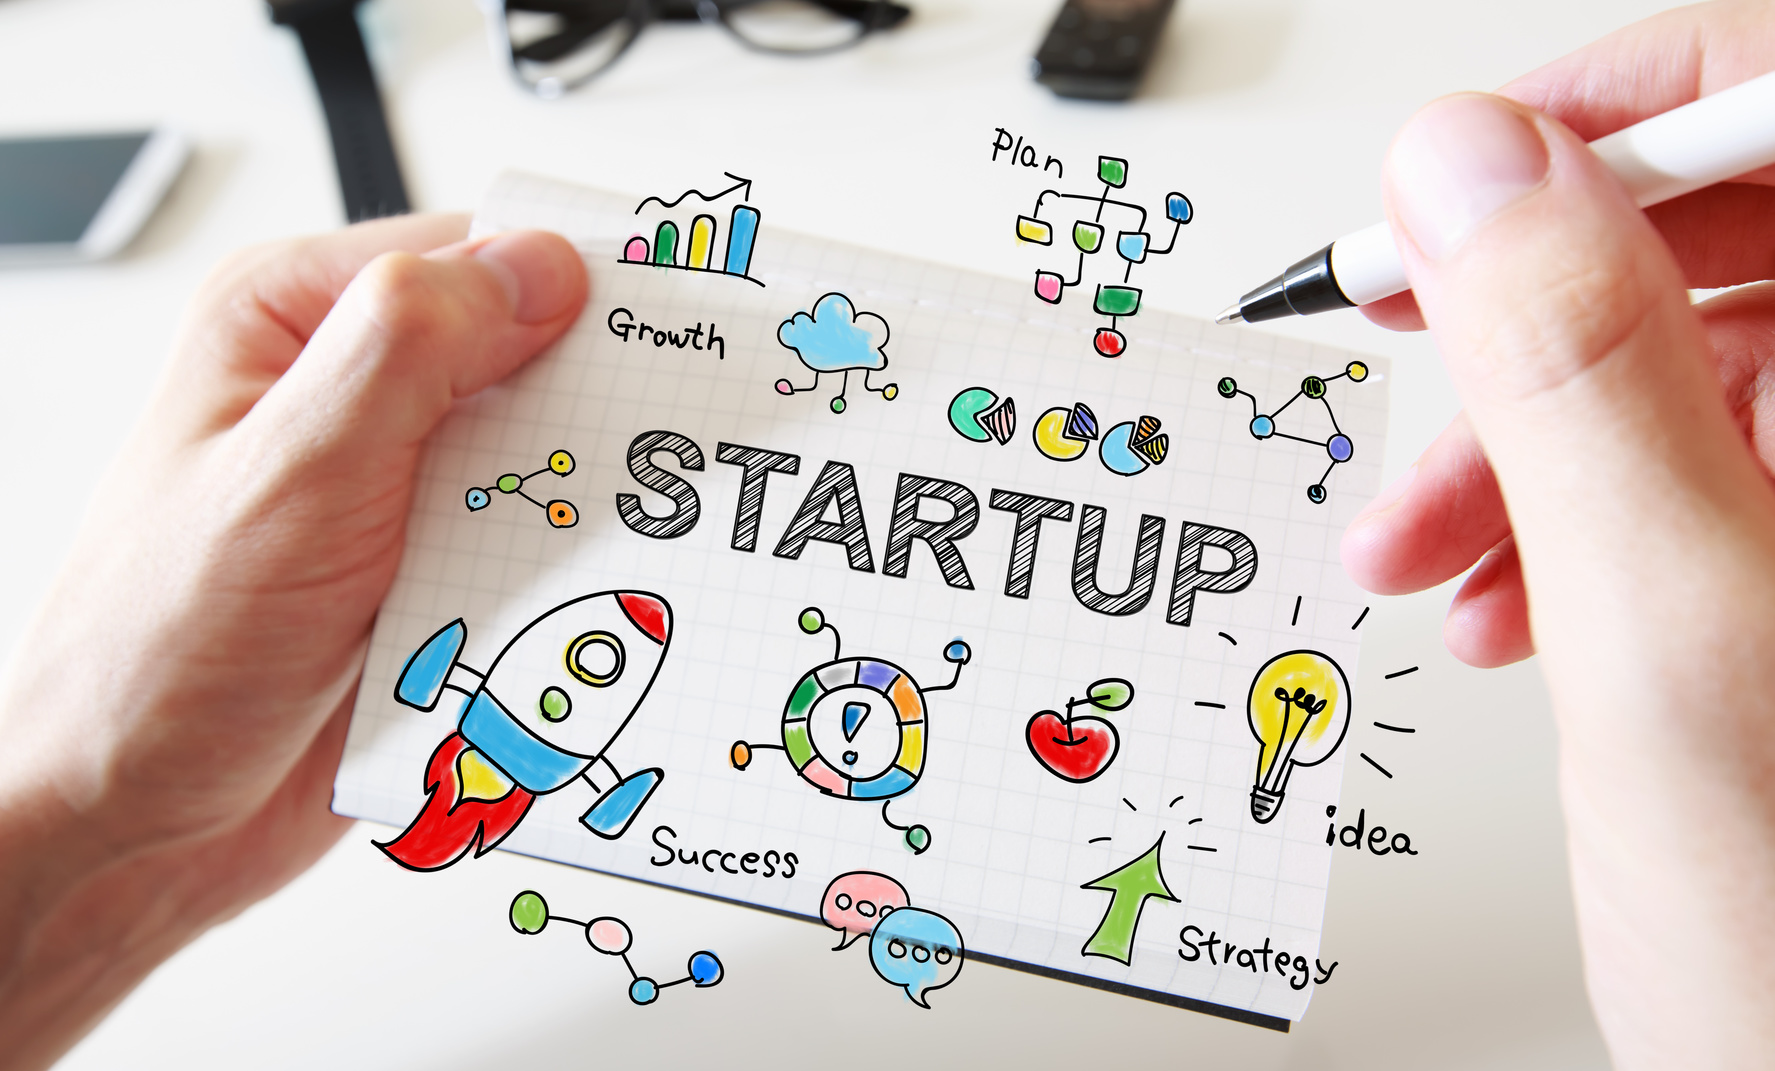 What you need to do to build your own startup